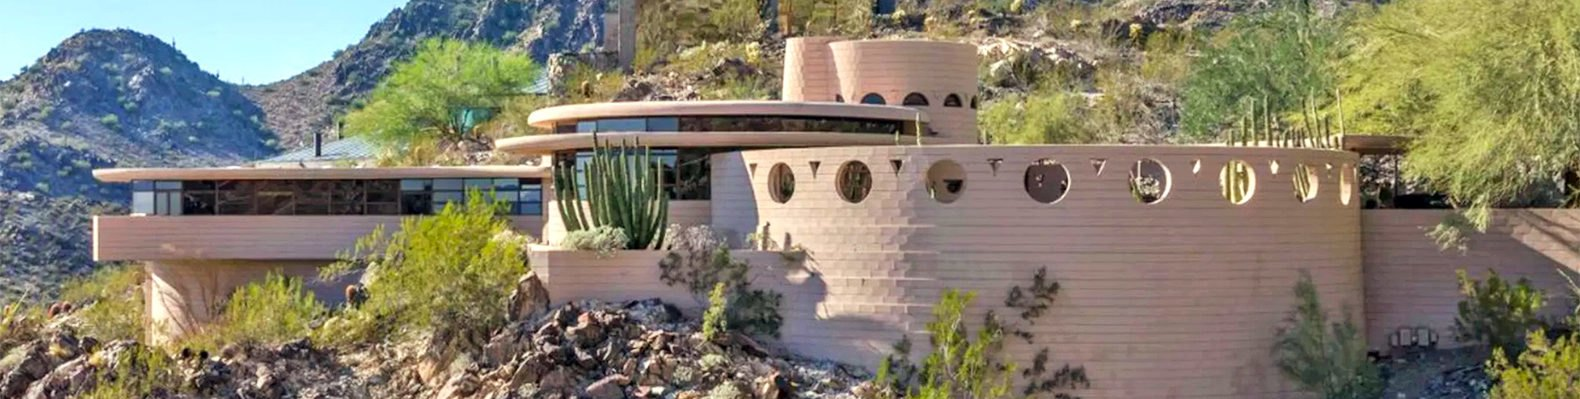 Frank Lloyd Wright, Norman Lykes House, FLW house in Phoenix, John Rattenbury, iconic house in Phoenix, modernist residence in Phoenix, Frank Lloyd Wright Foundation